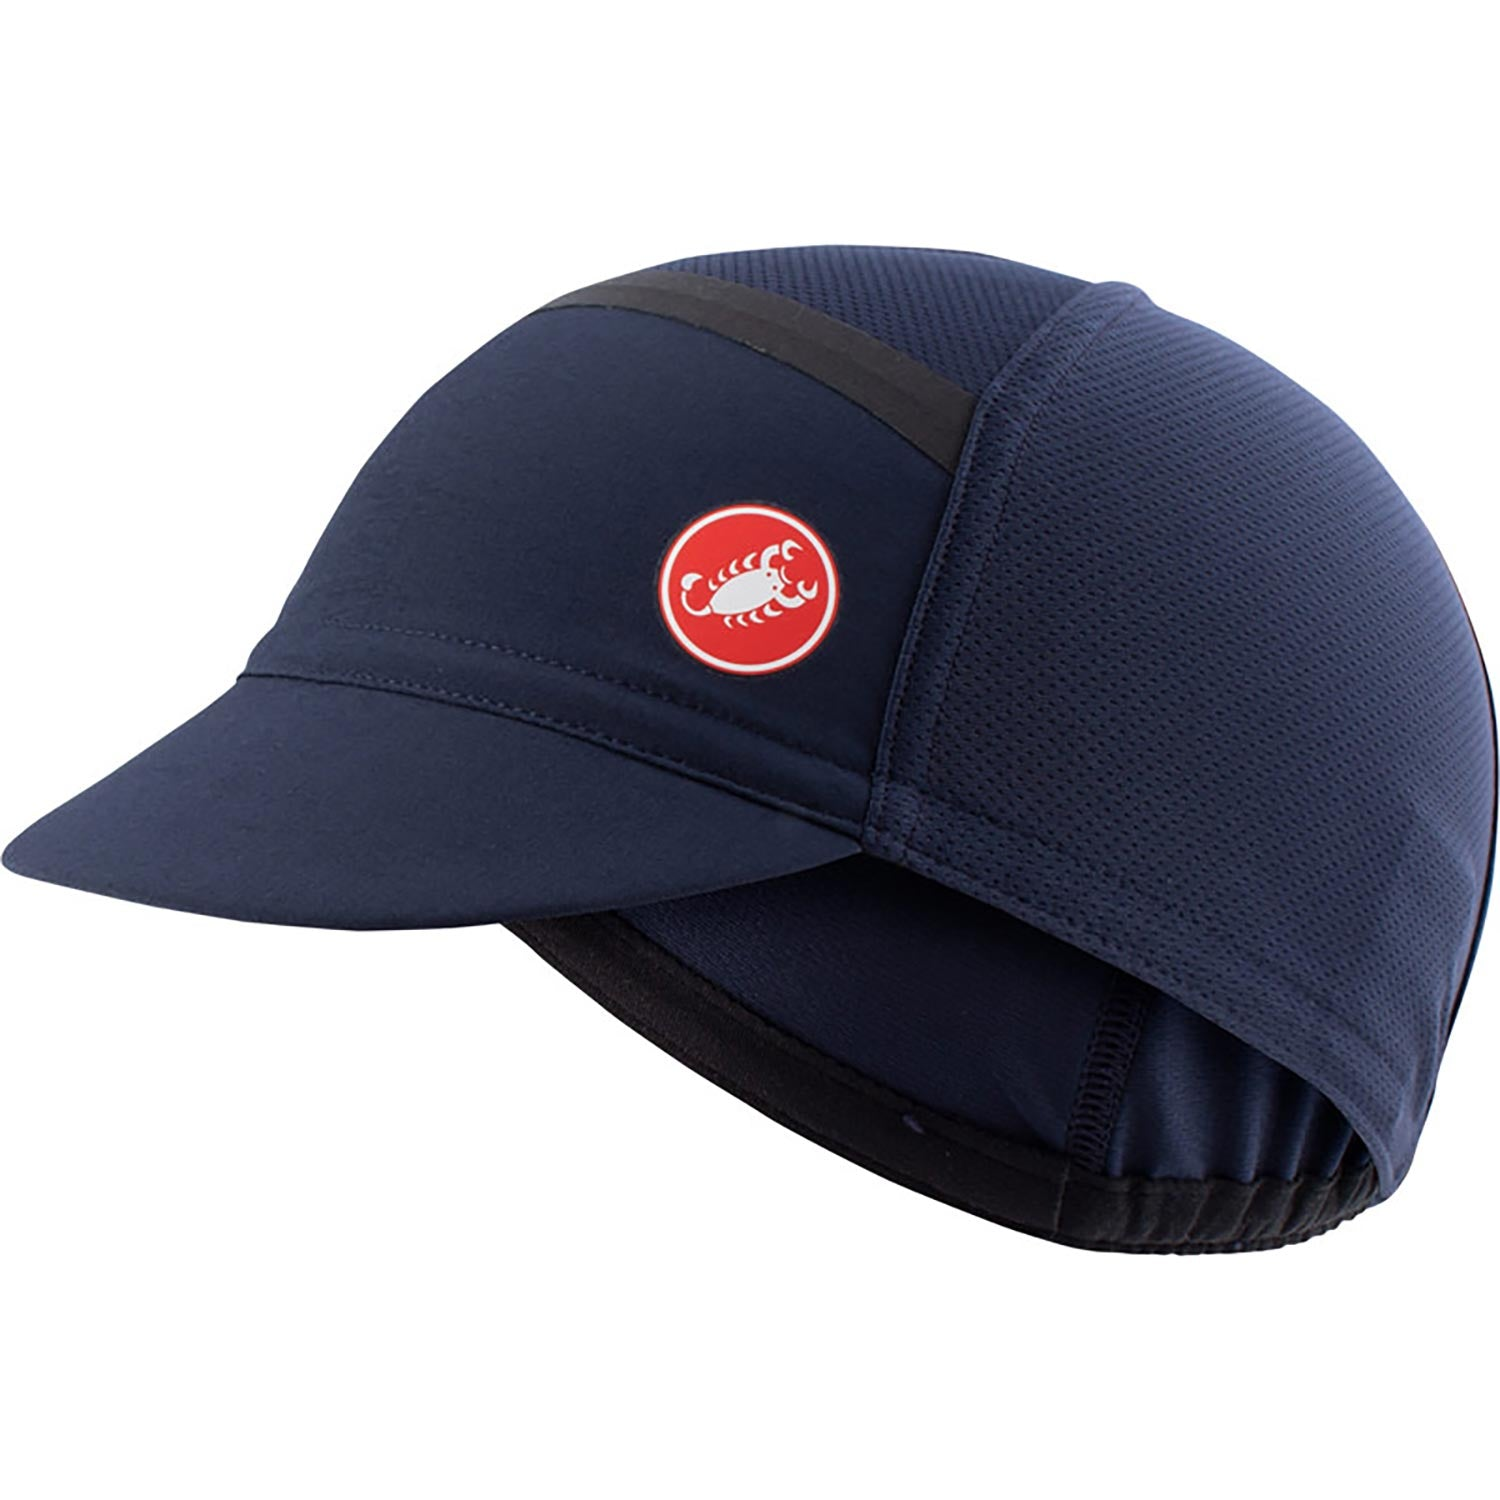 Castelli-Castelli Ombra Cycling Cap-Savile Blue-UNI-CS210344148-saddleback-elite-performance-cycling